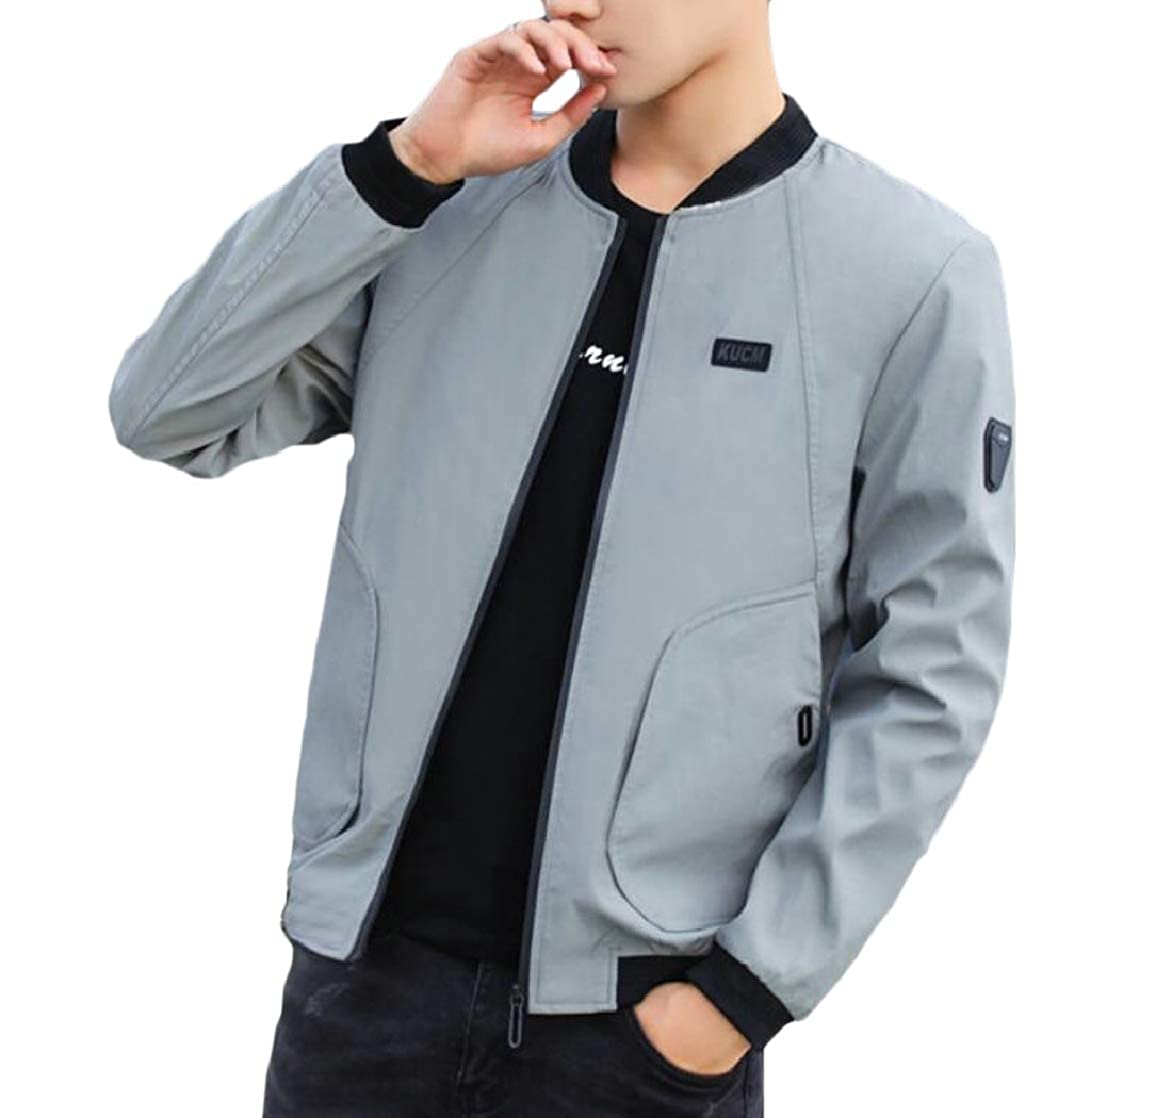 72a014084 Grey pujingge-CA Men's Fashion Long Sleeve Lightweight Slim Stand Stand  Stand Collar Zipper Jackets 01cf48